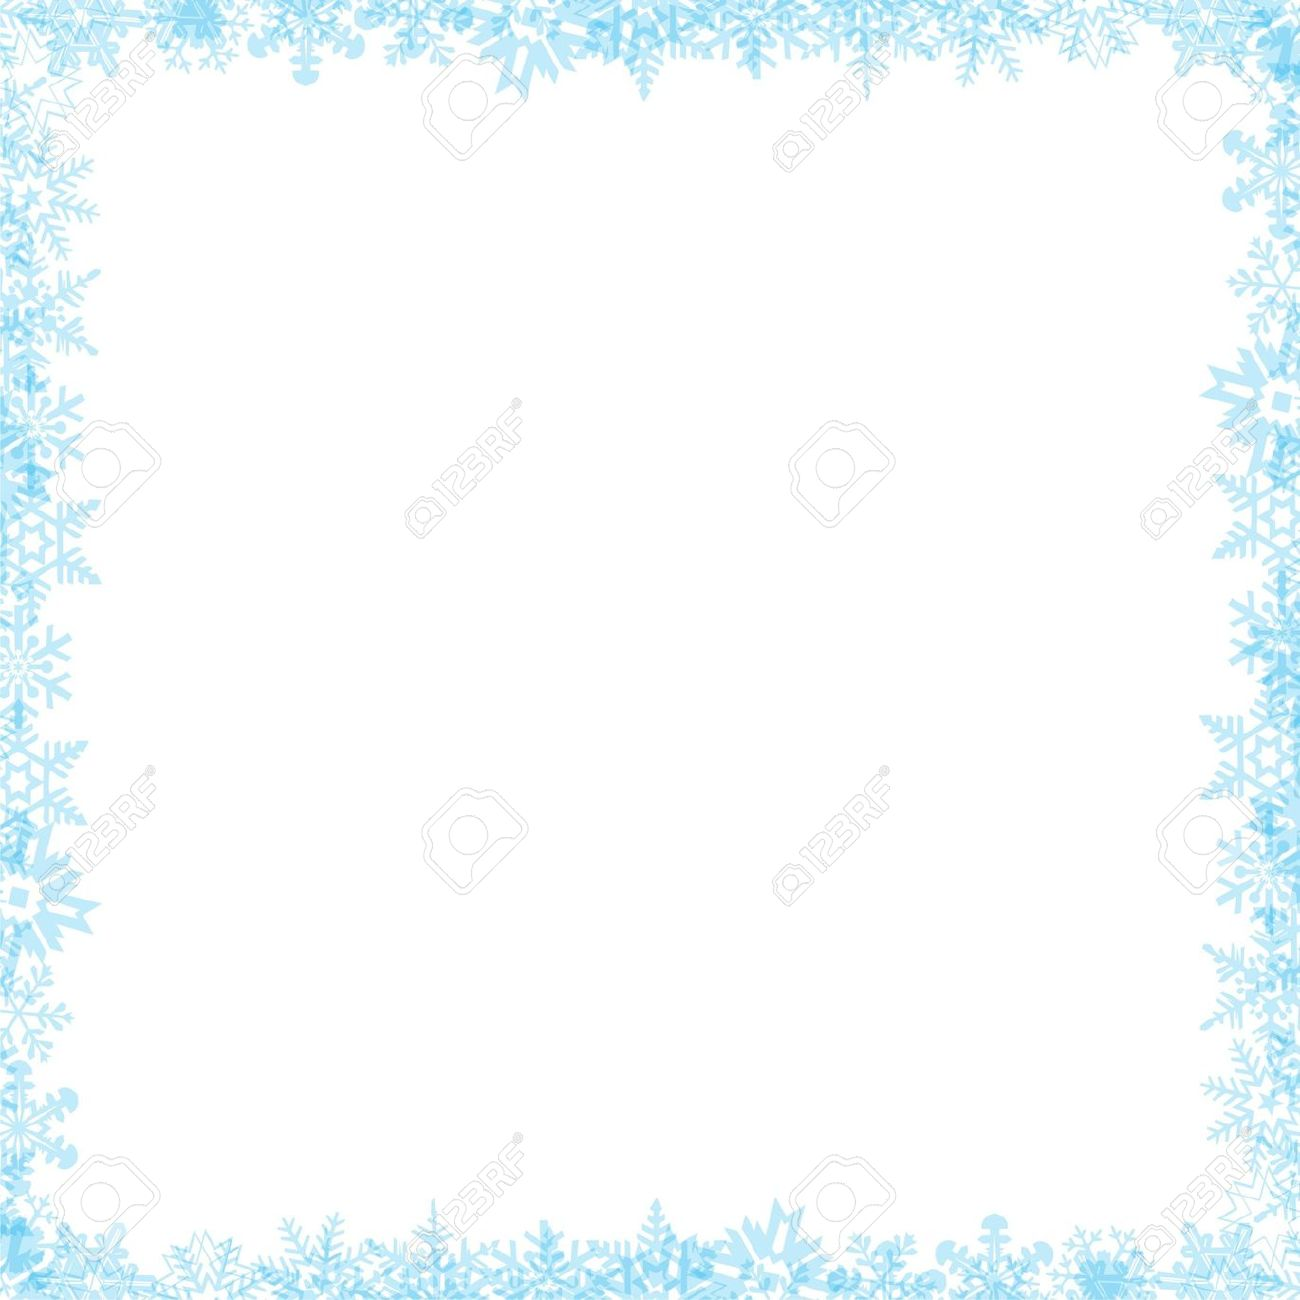 image freeuse stock Snow borders clipart. Station